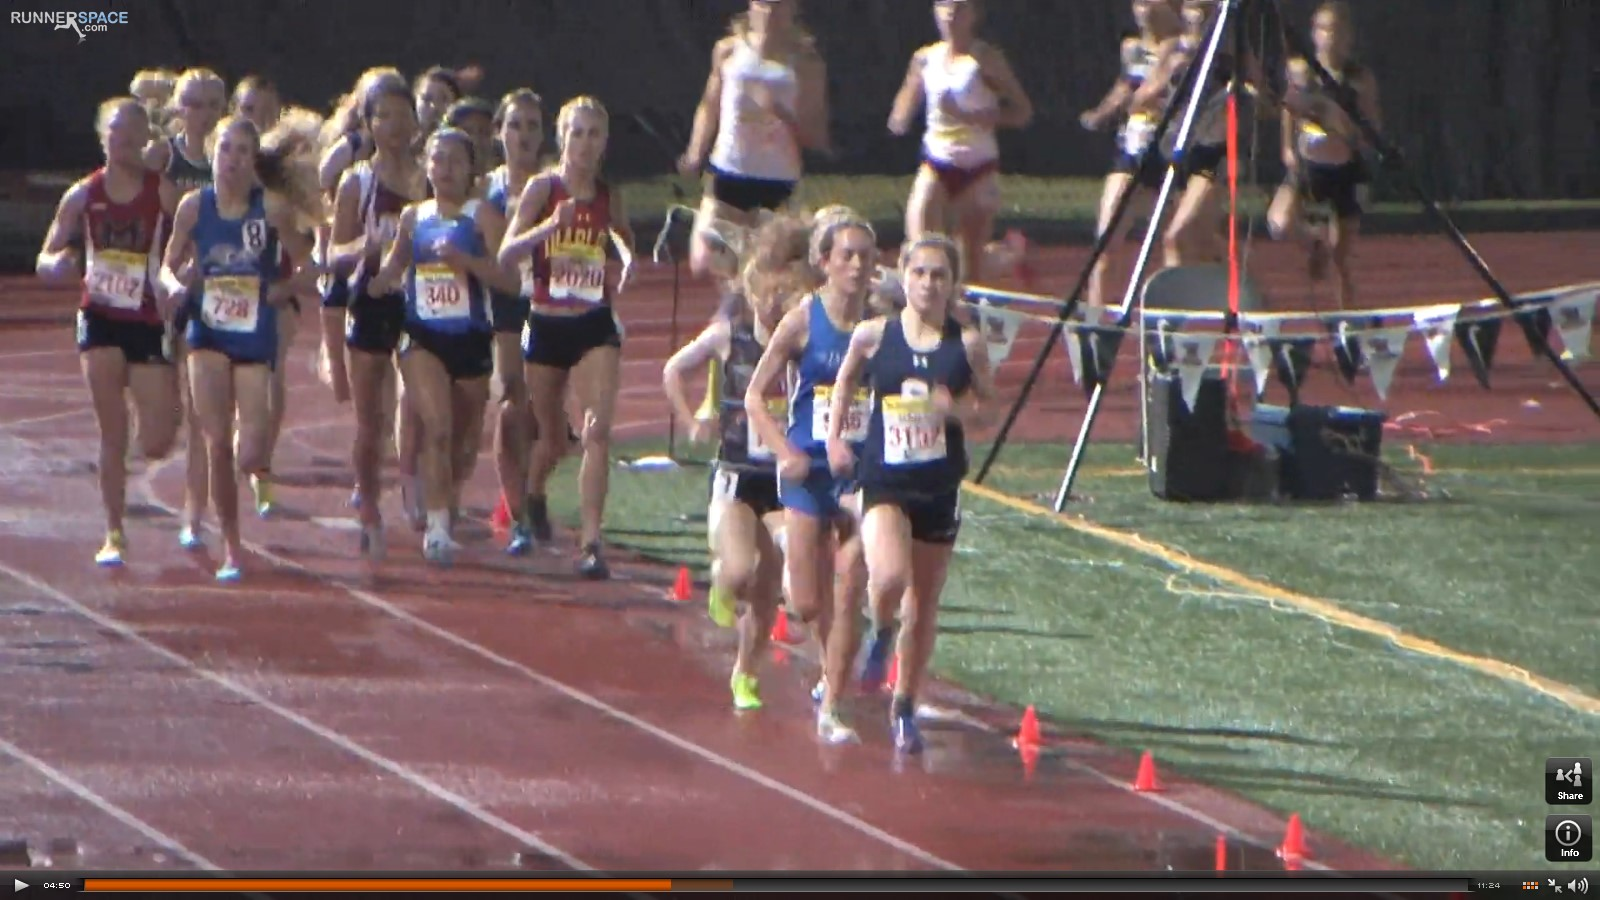 As the race broke into three packs Rylee ran at the end of the 2nd pack. She had passed the 1600m mark in 5:09.66 with the leader in 5:06.76.